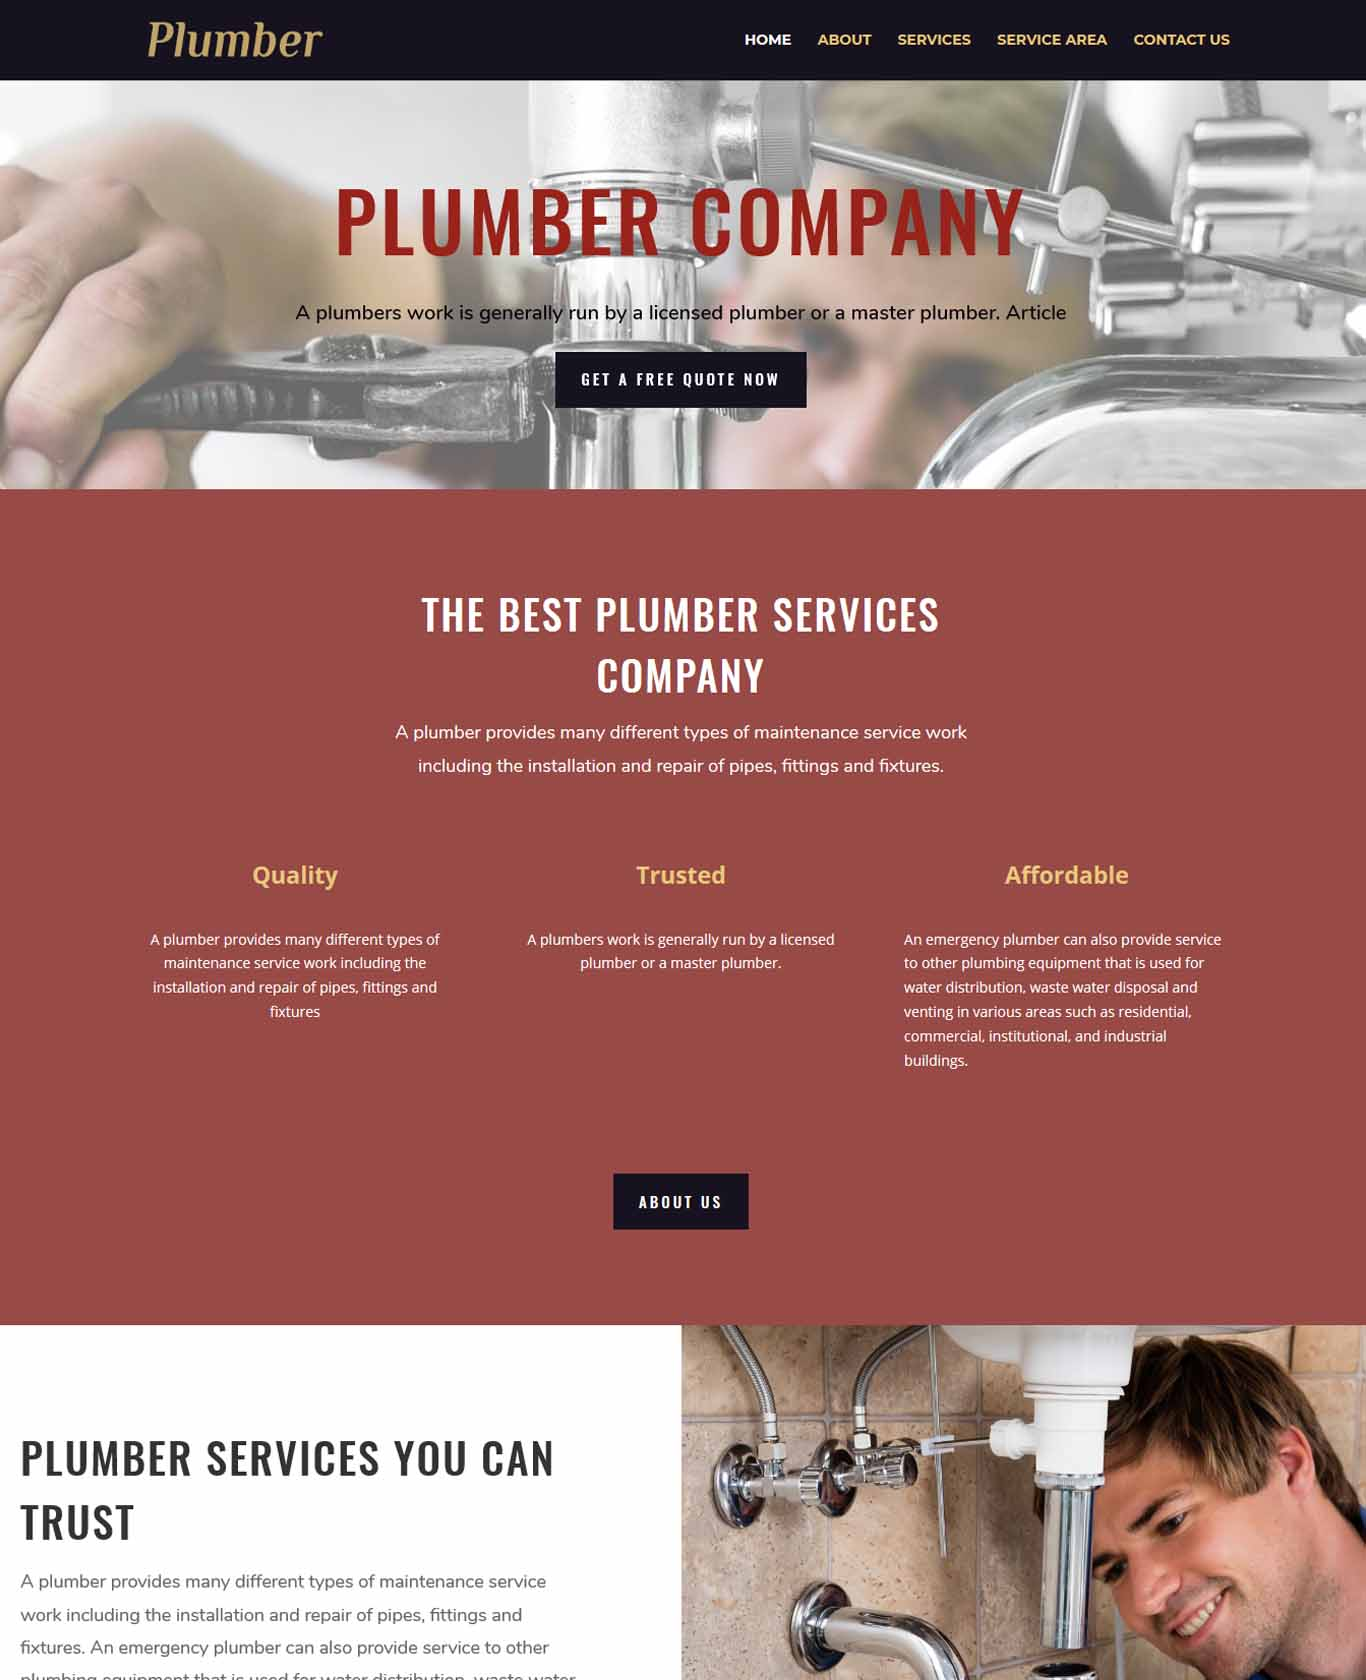 Plumber Website Sample Design 2